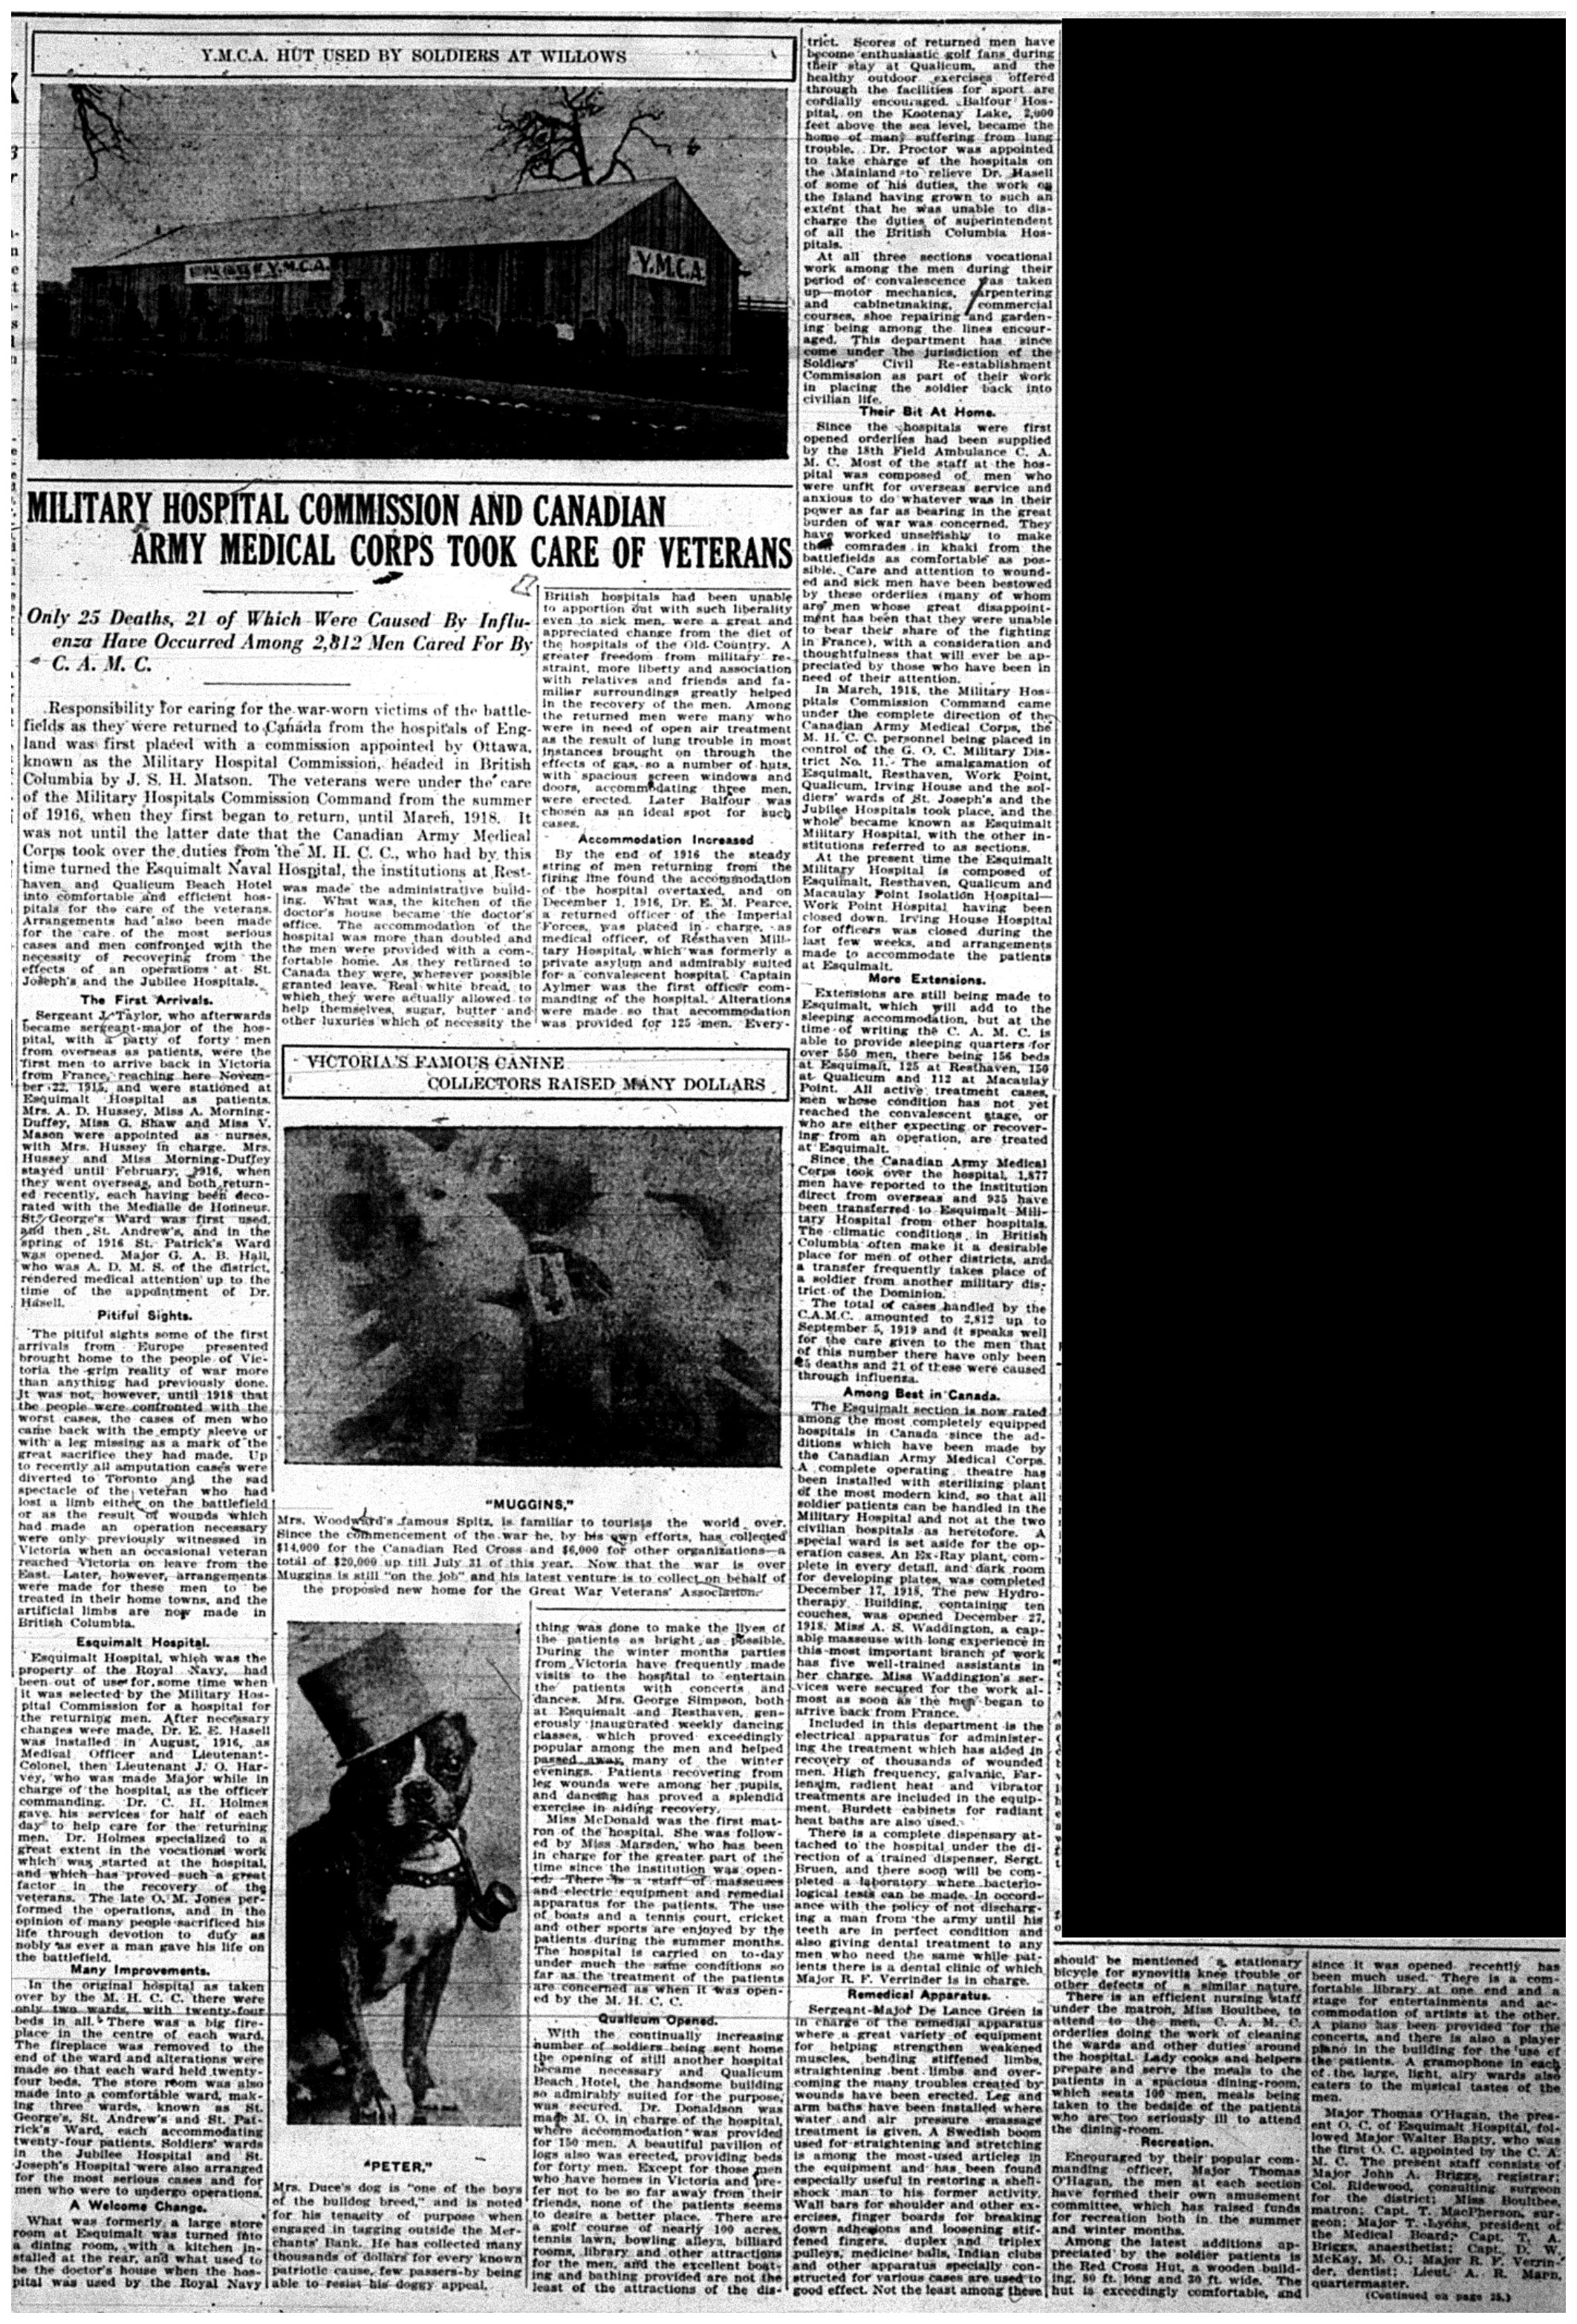 """Military Hospital Commission And Canadian Army Medical Corps Took Care of Veterans"""